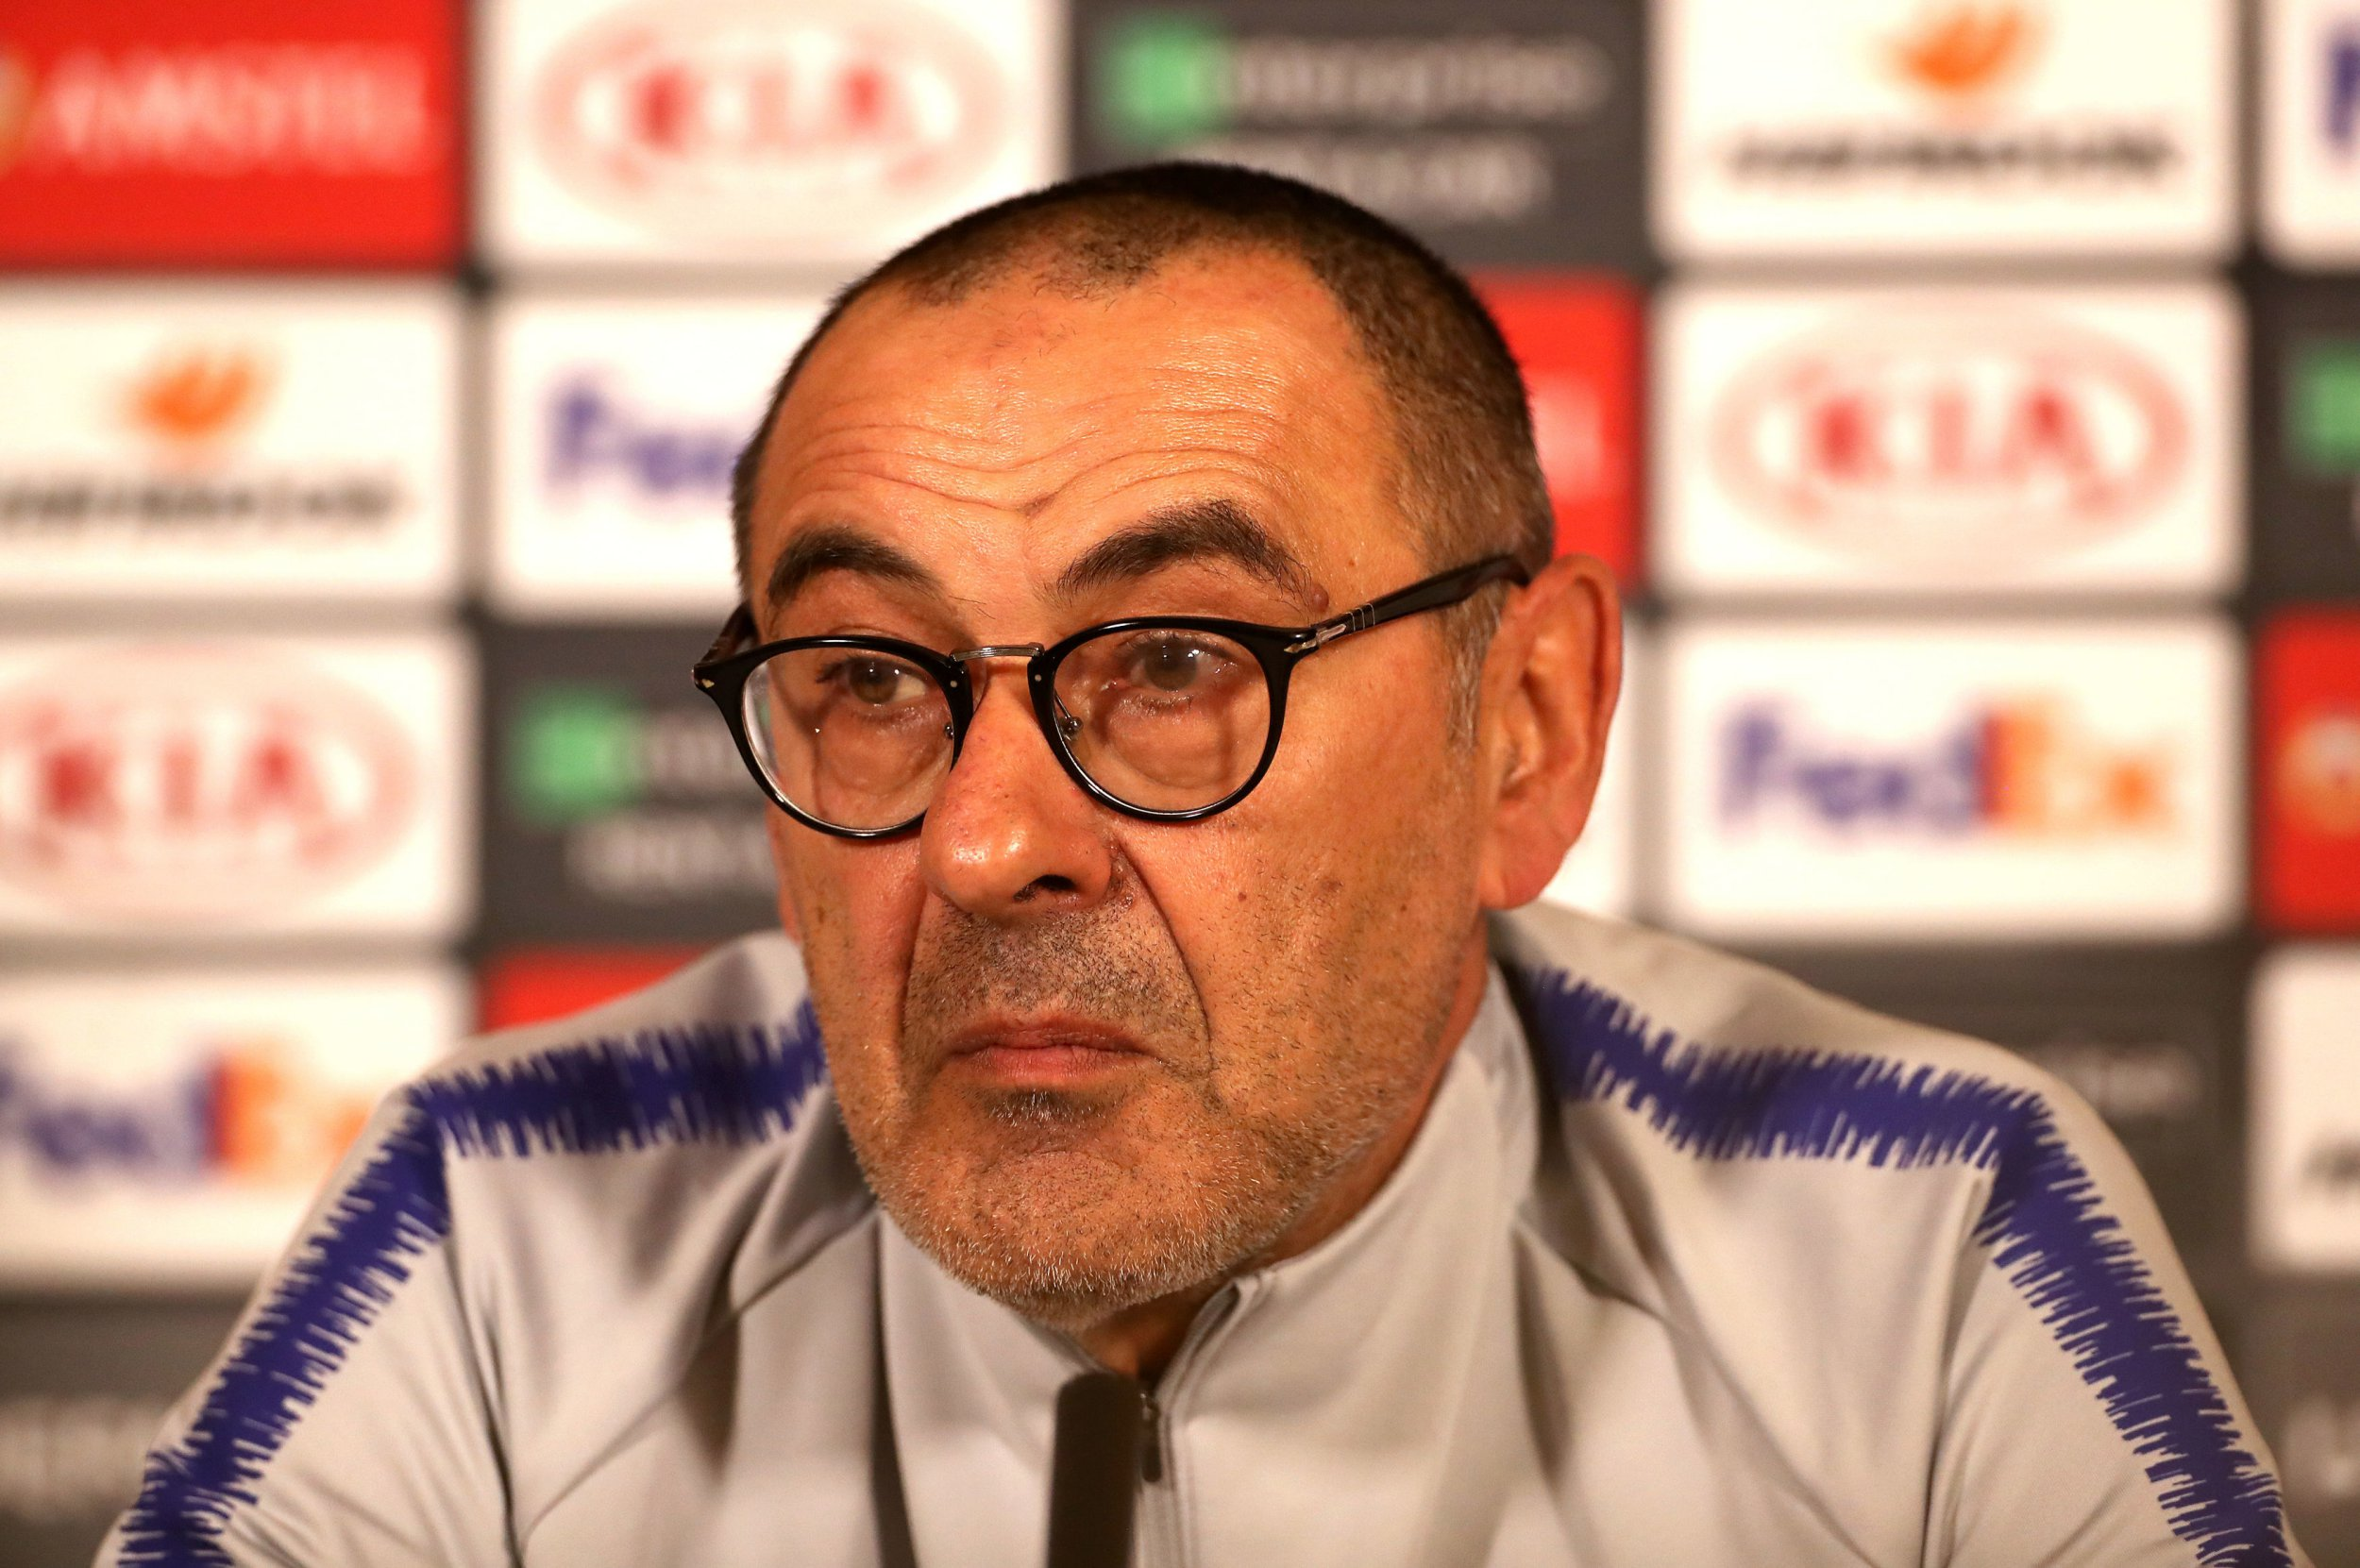 Maurizio Sarri is concerned with Chelsea players suffering from fatigue before they face Arsenal